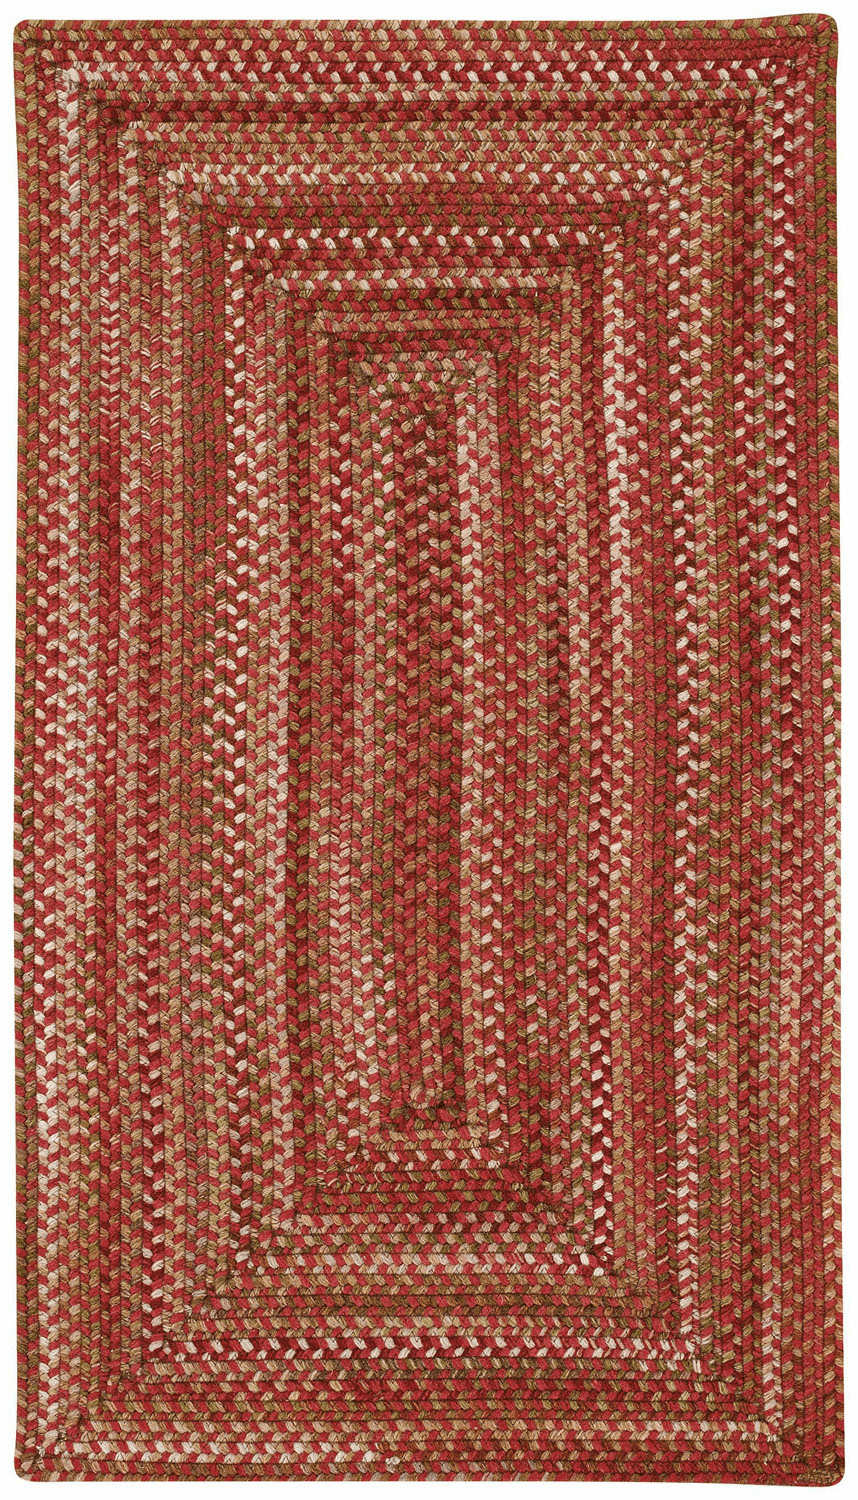 Hand-Braided Redwood Rug